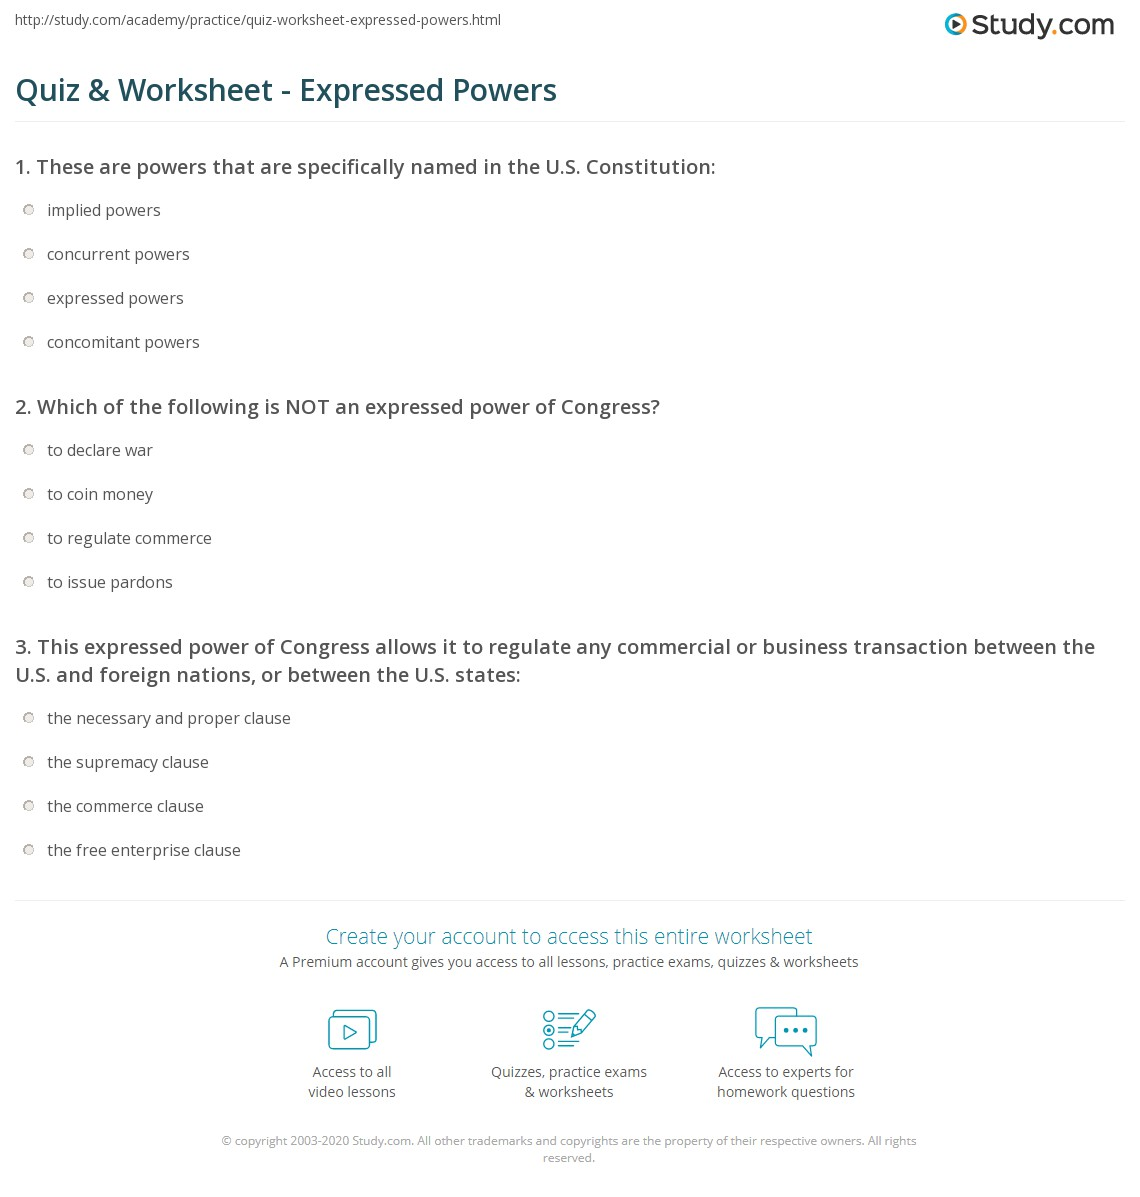 Quiz Worksheet Expressed Powers Study